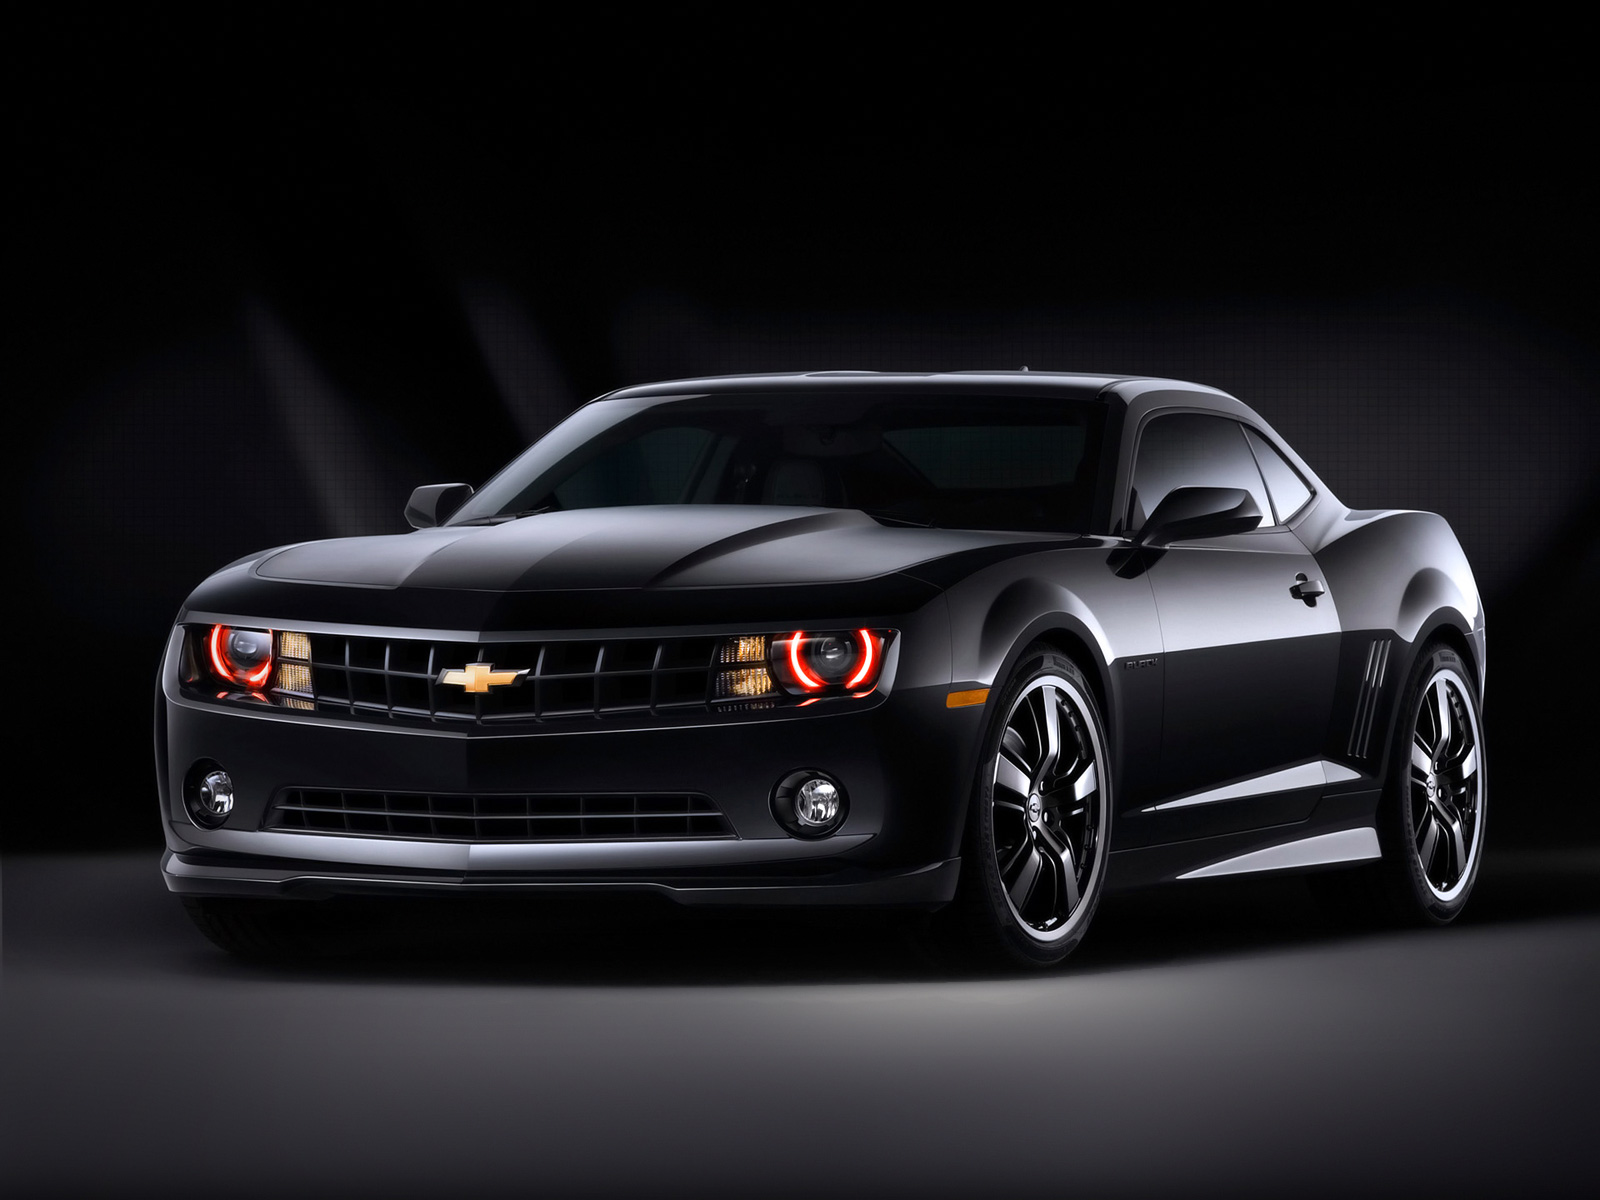 Chevrolet Camaro photo 02